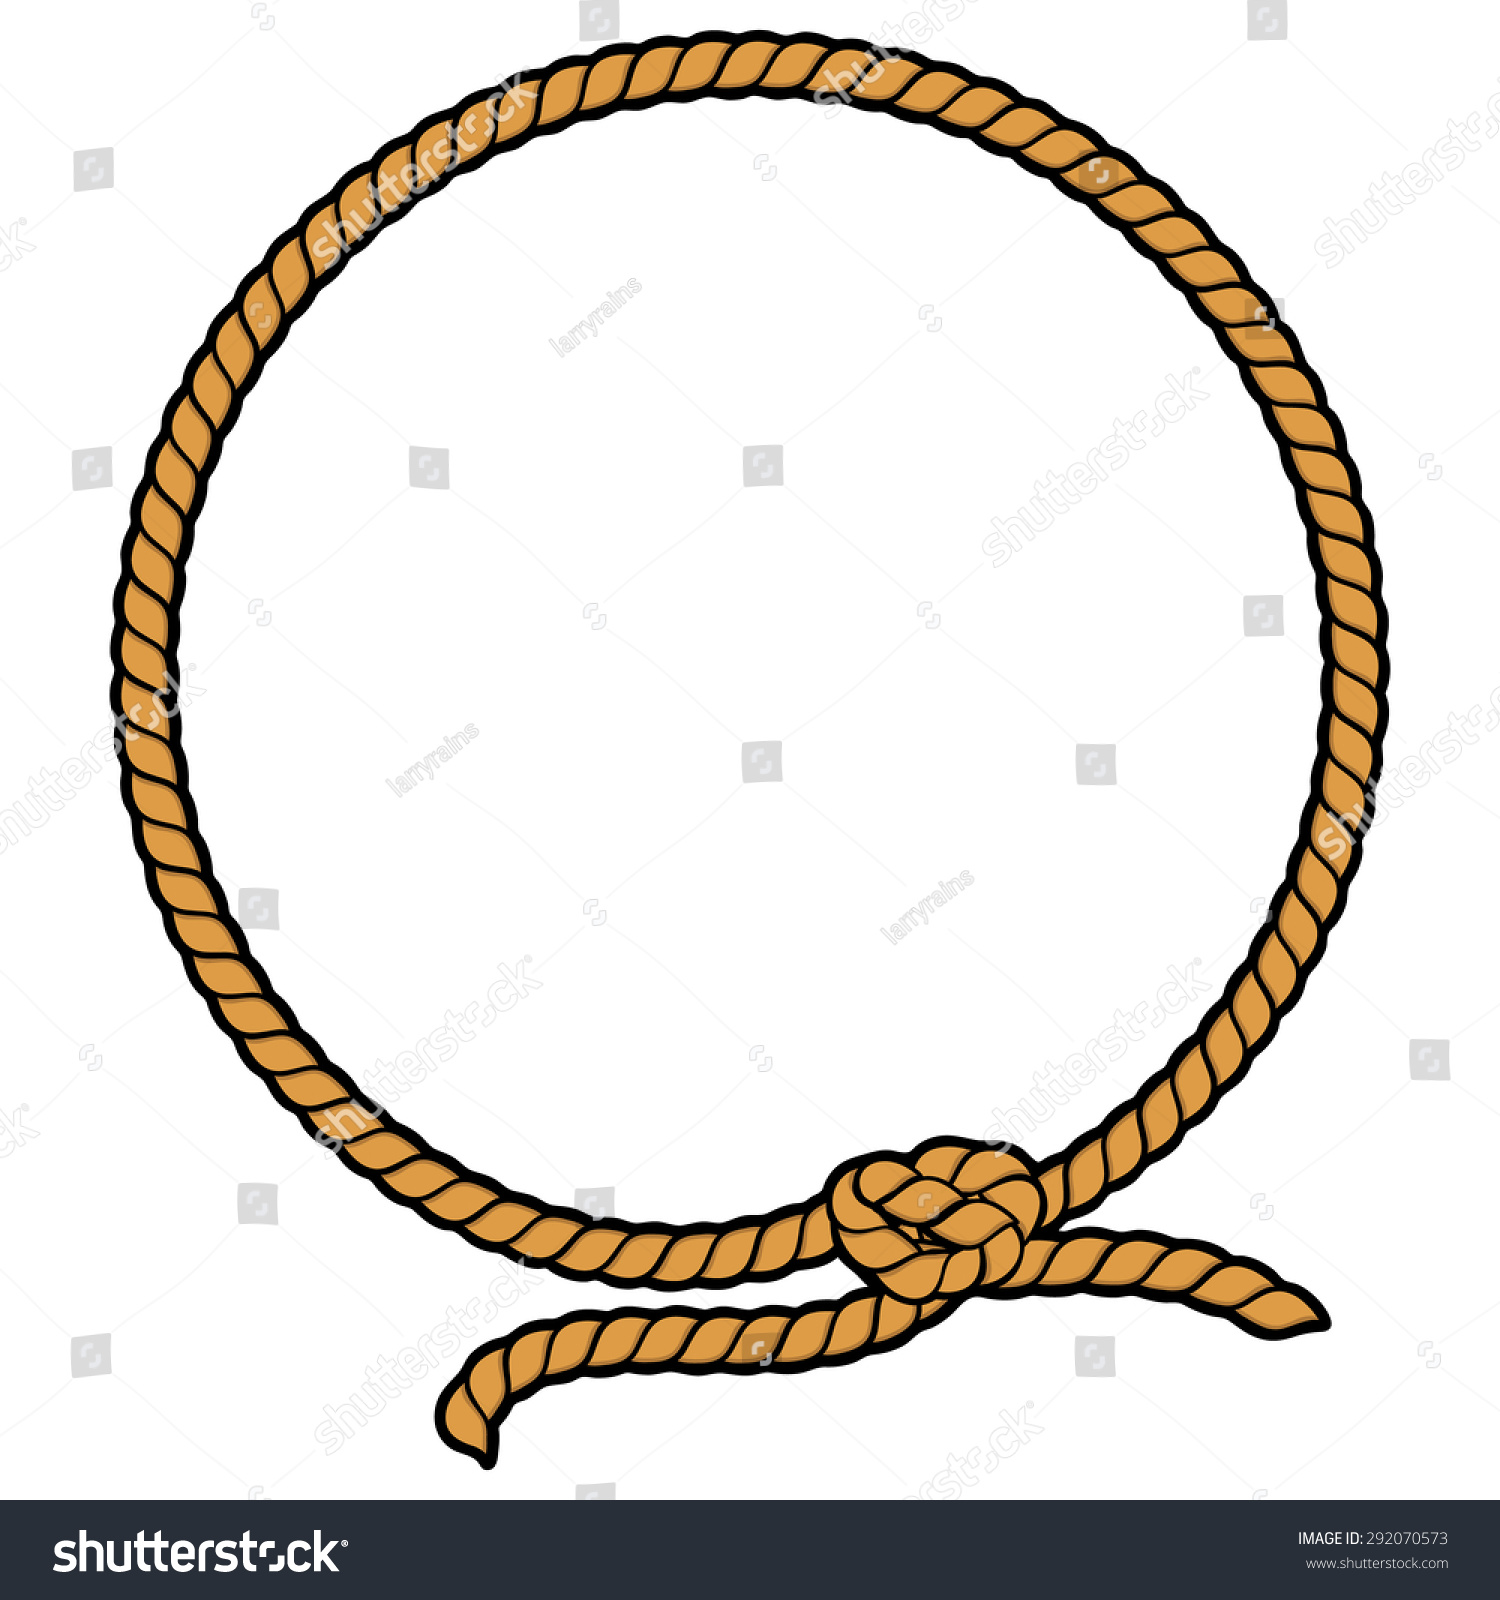 clipart rope border circle - photo #36